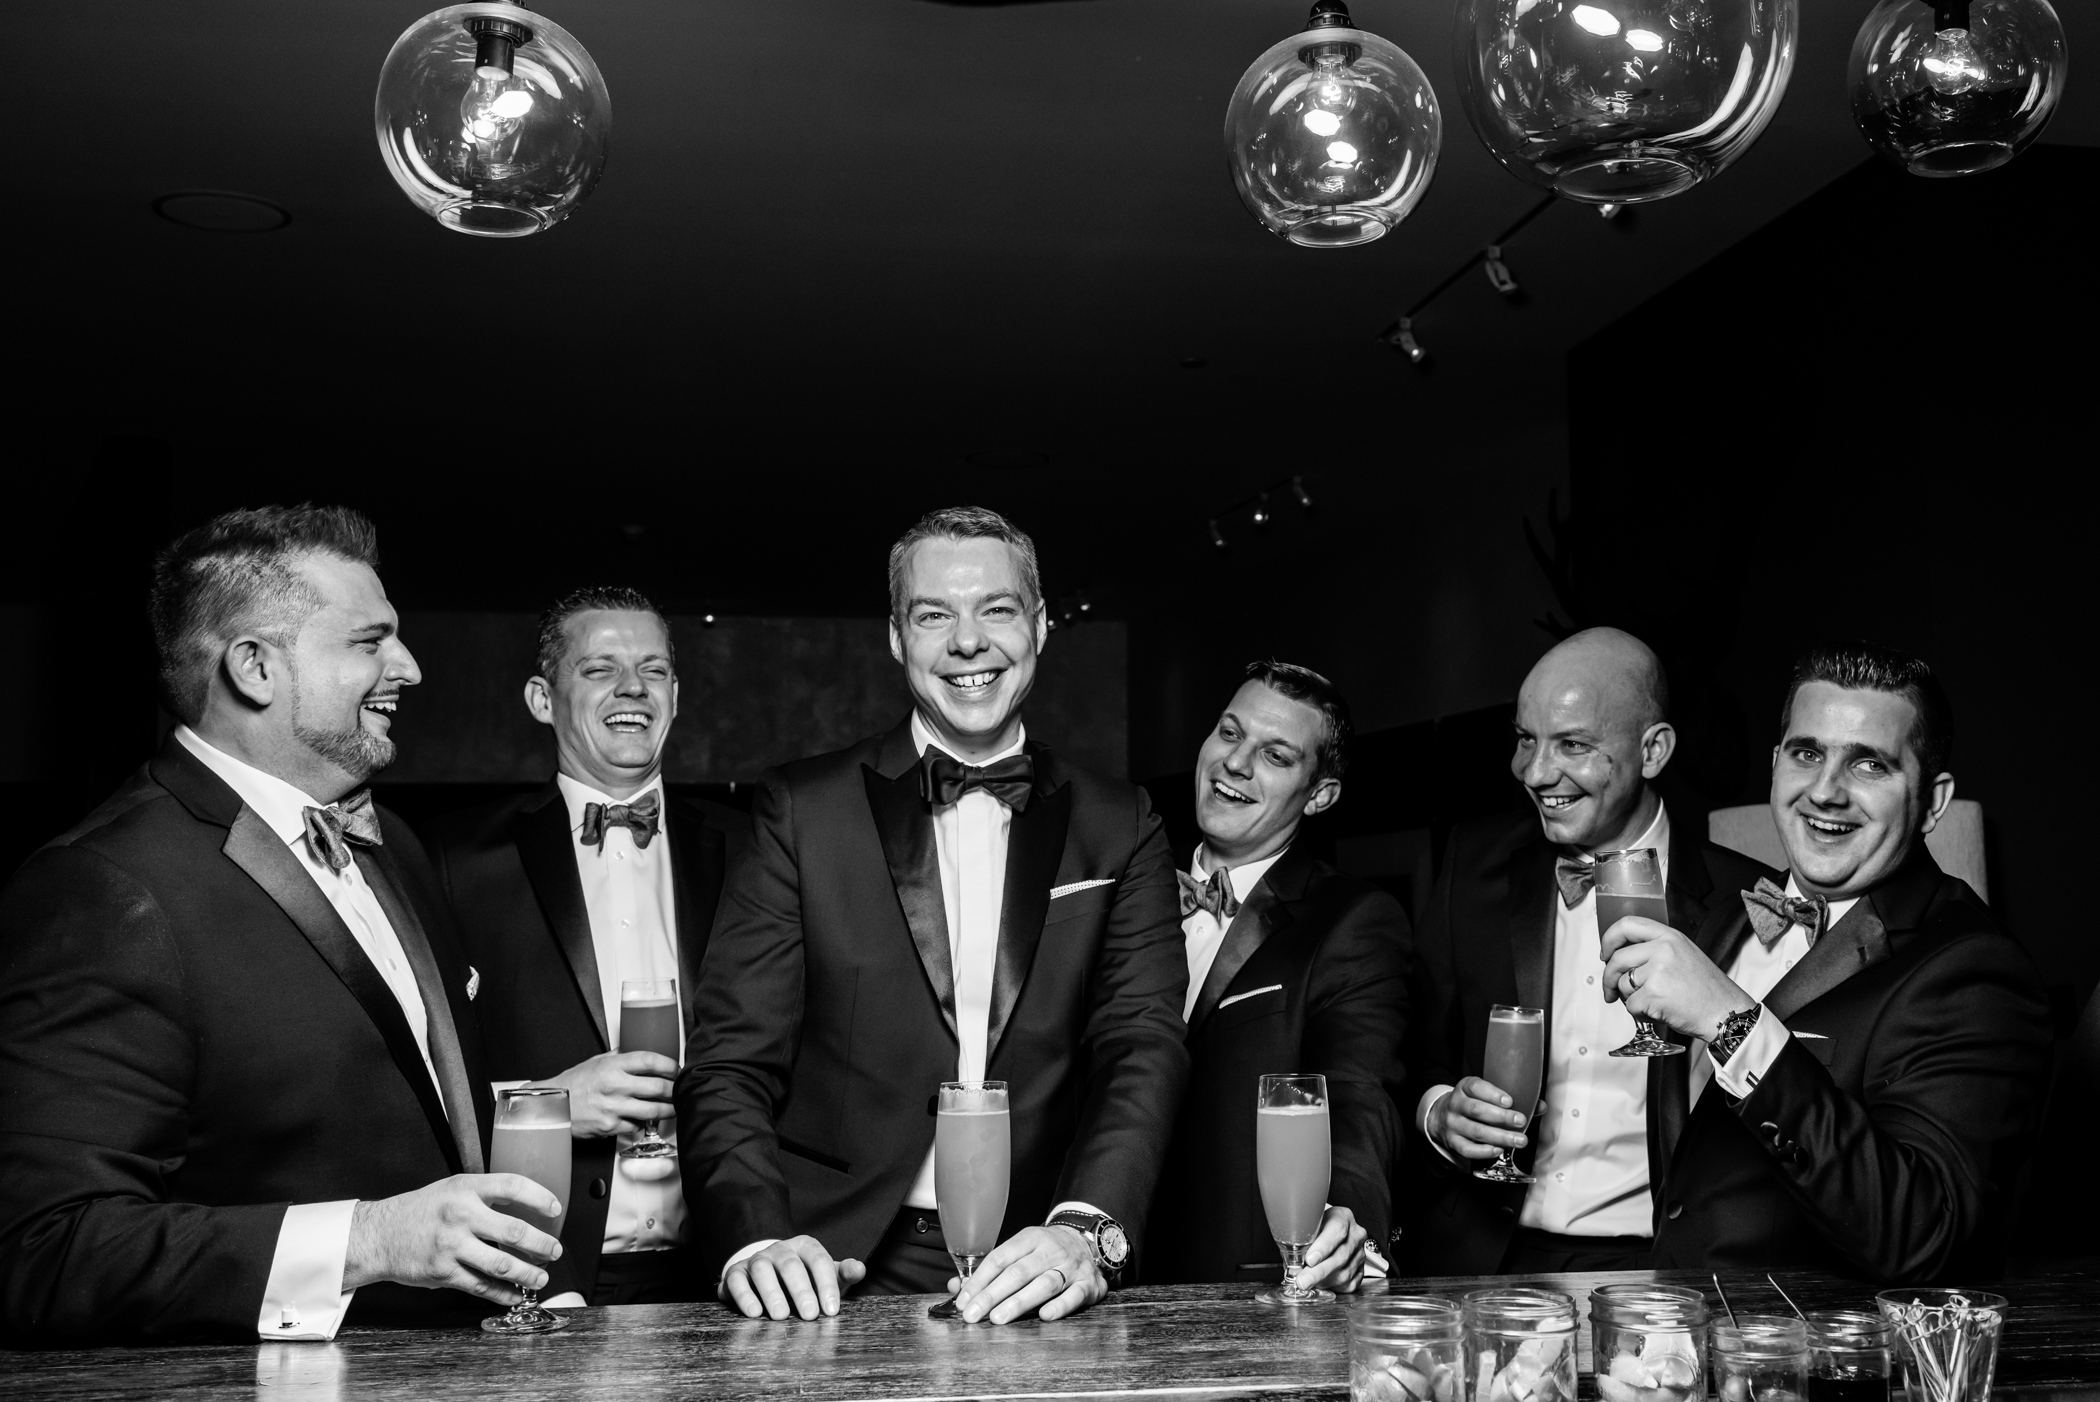 Stefy Hilmer Photography-groomsmen photo at the bar at the Roundhouse in Beacon.jpg